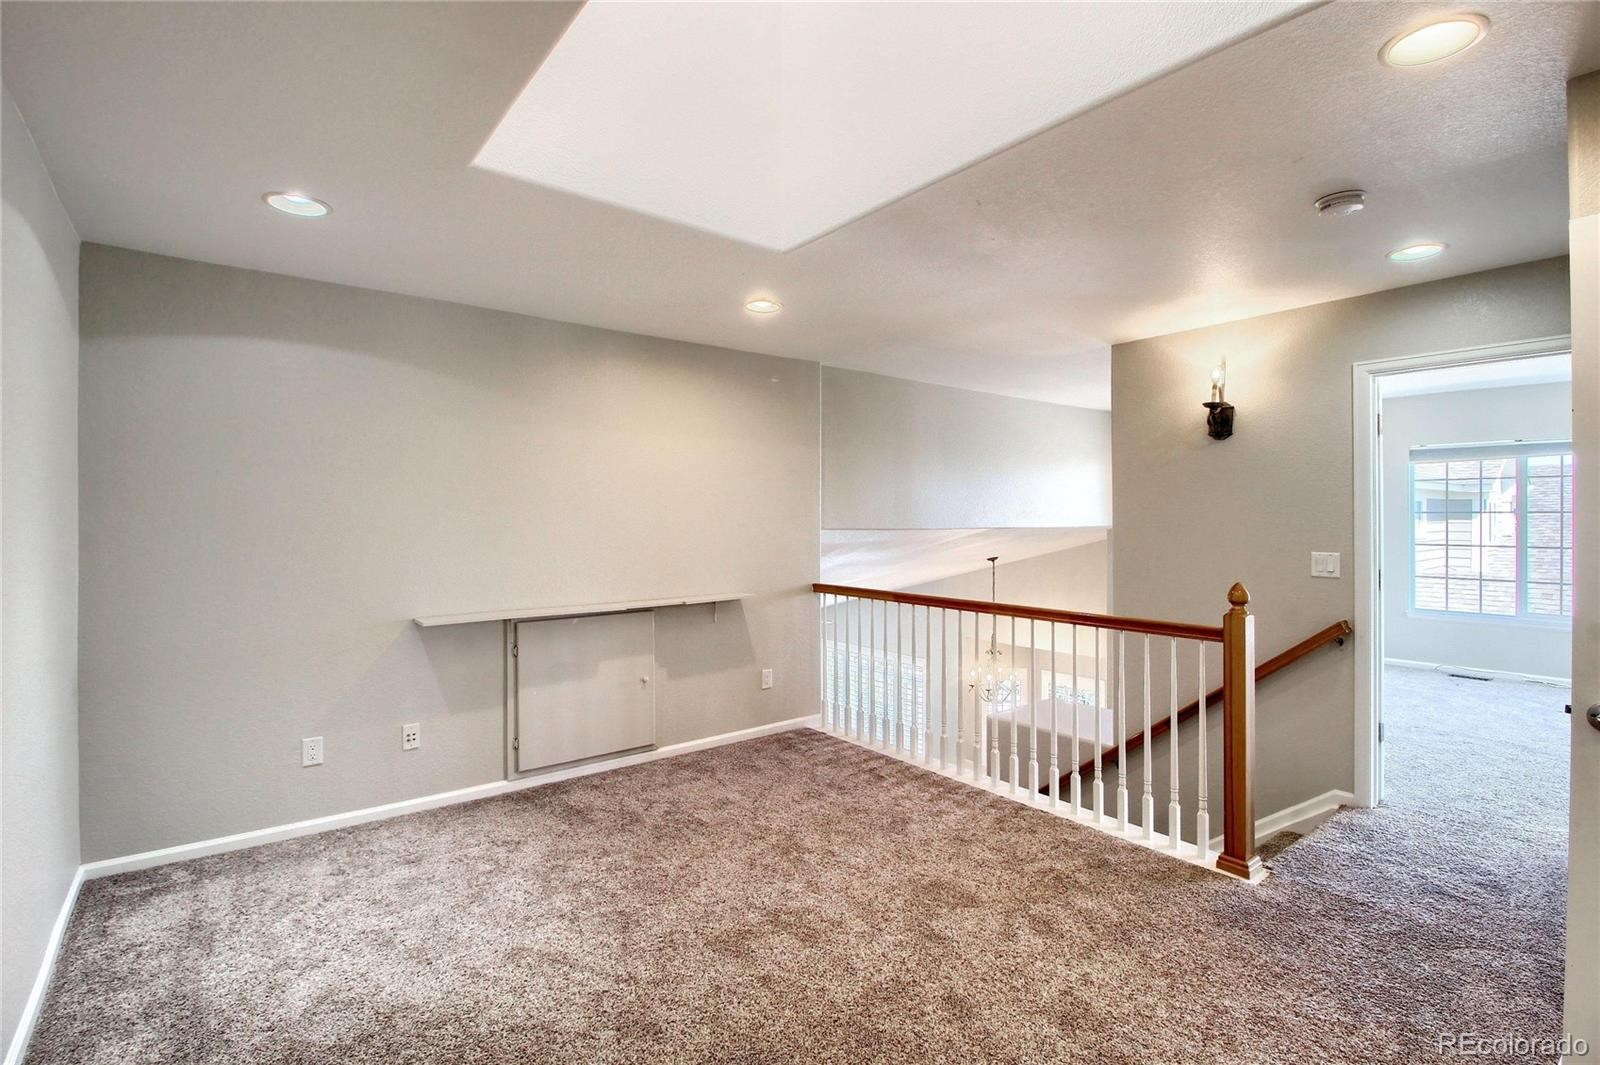 MLS# 8597792 - 8 - 13787 Stone Circle #101, Broomfield, CO 80023